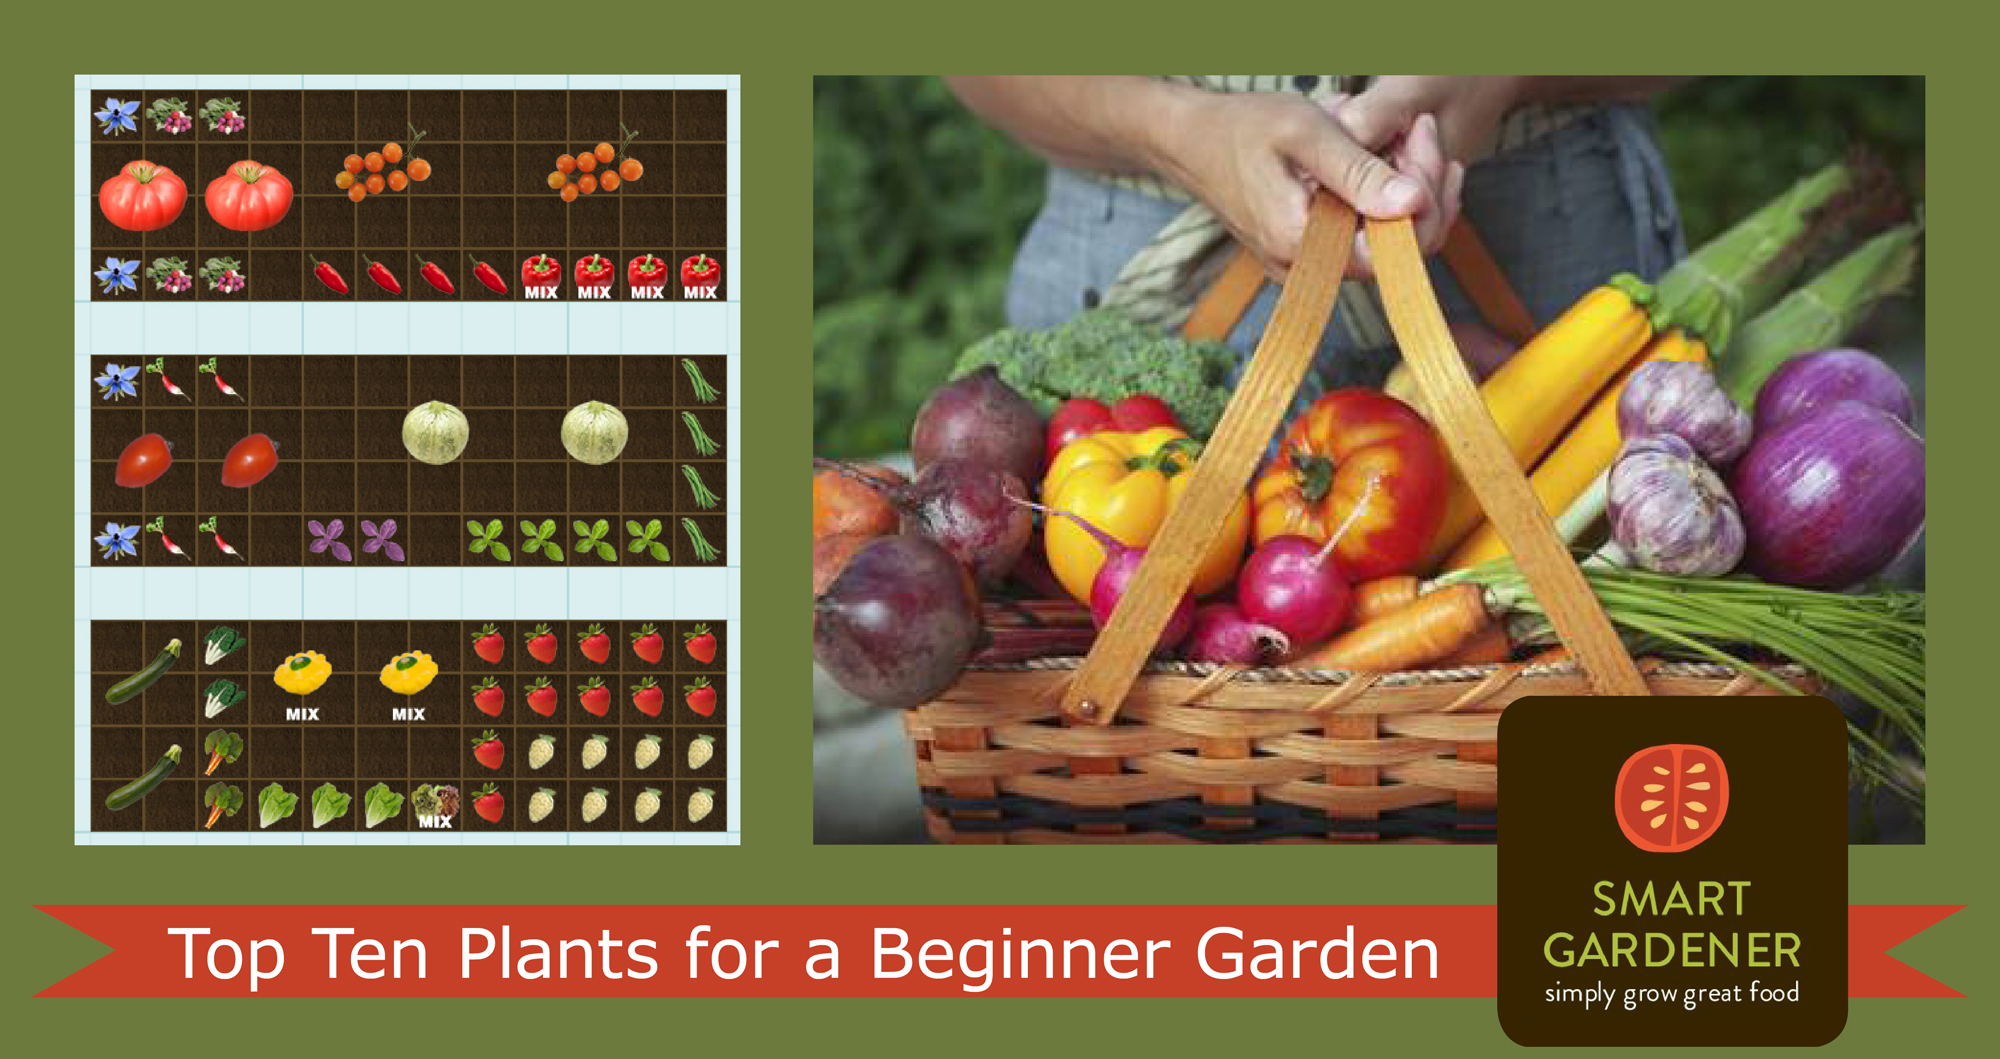 Top Ten Plants for a Beginner Garden